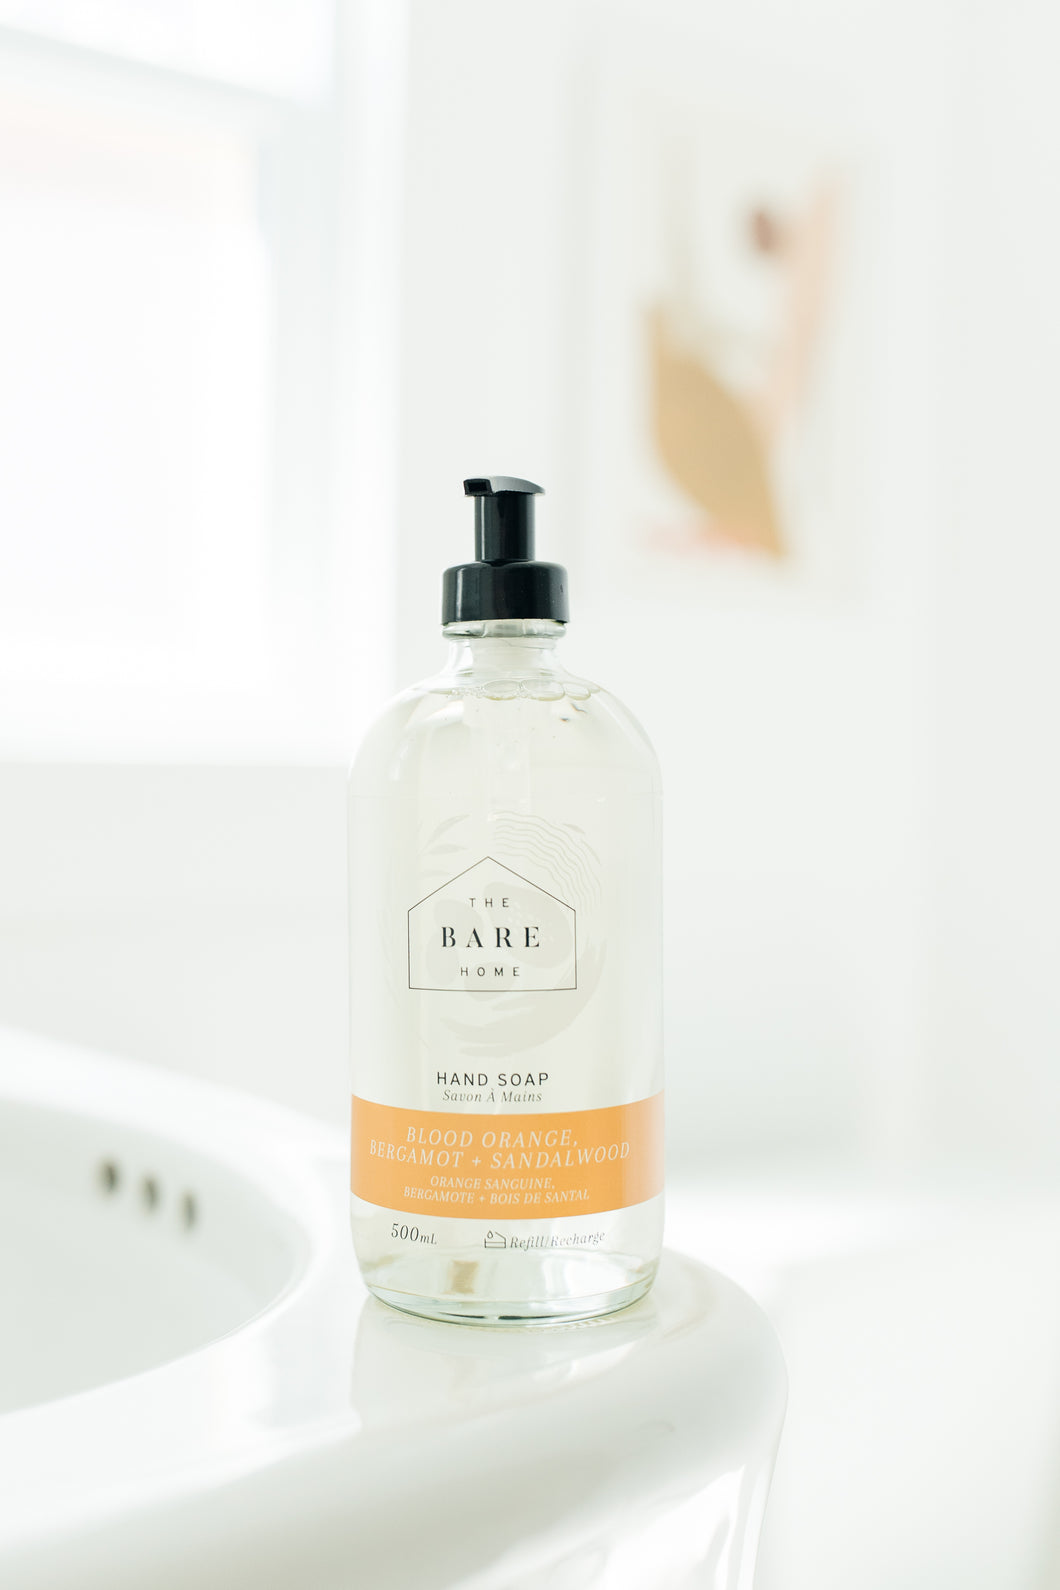 Blood Orange + Bergamot + Sandalwood Hand Soap - The Bare Home